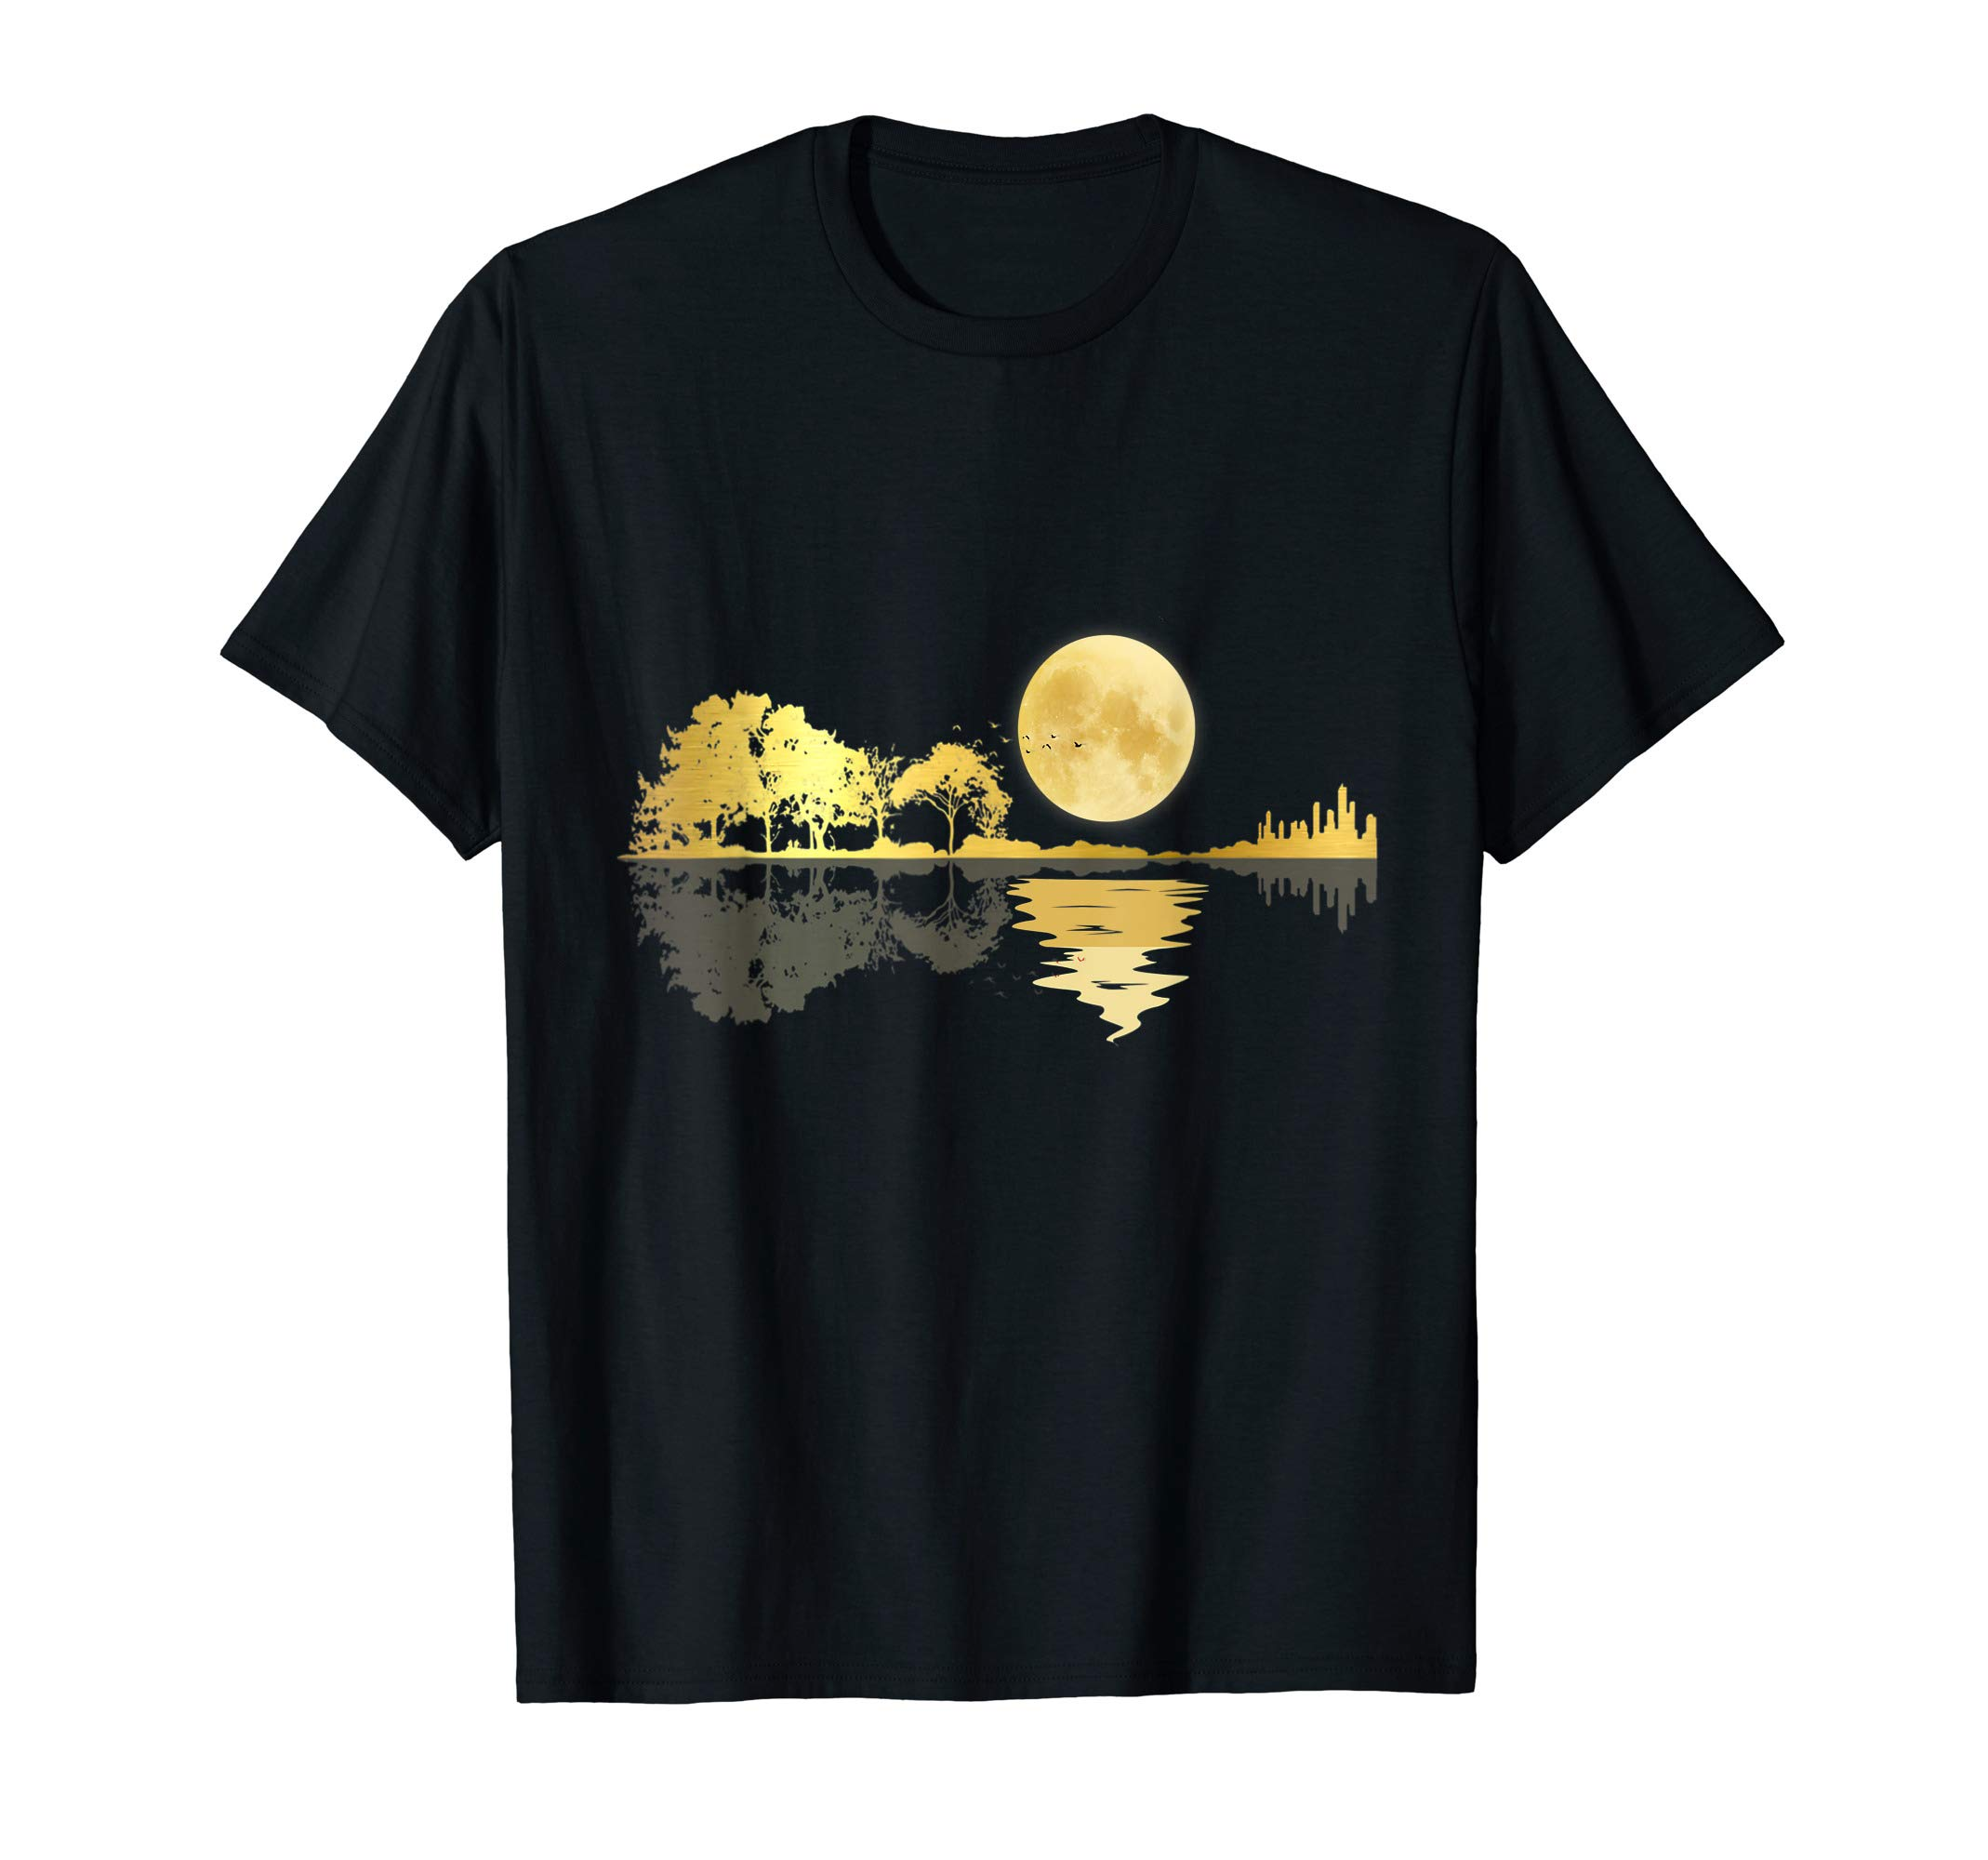 Guitar Lake Shadow Love Guitar Musician Nature Forest Gift T-Shirt by Acoustic Guitar Moonlight Nature Lake Shadow